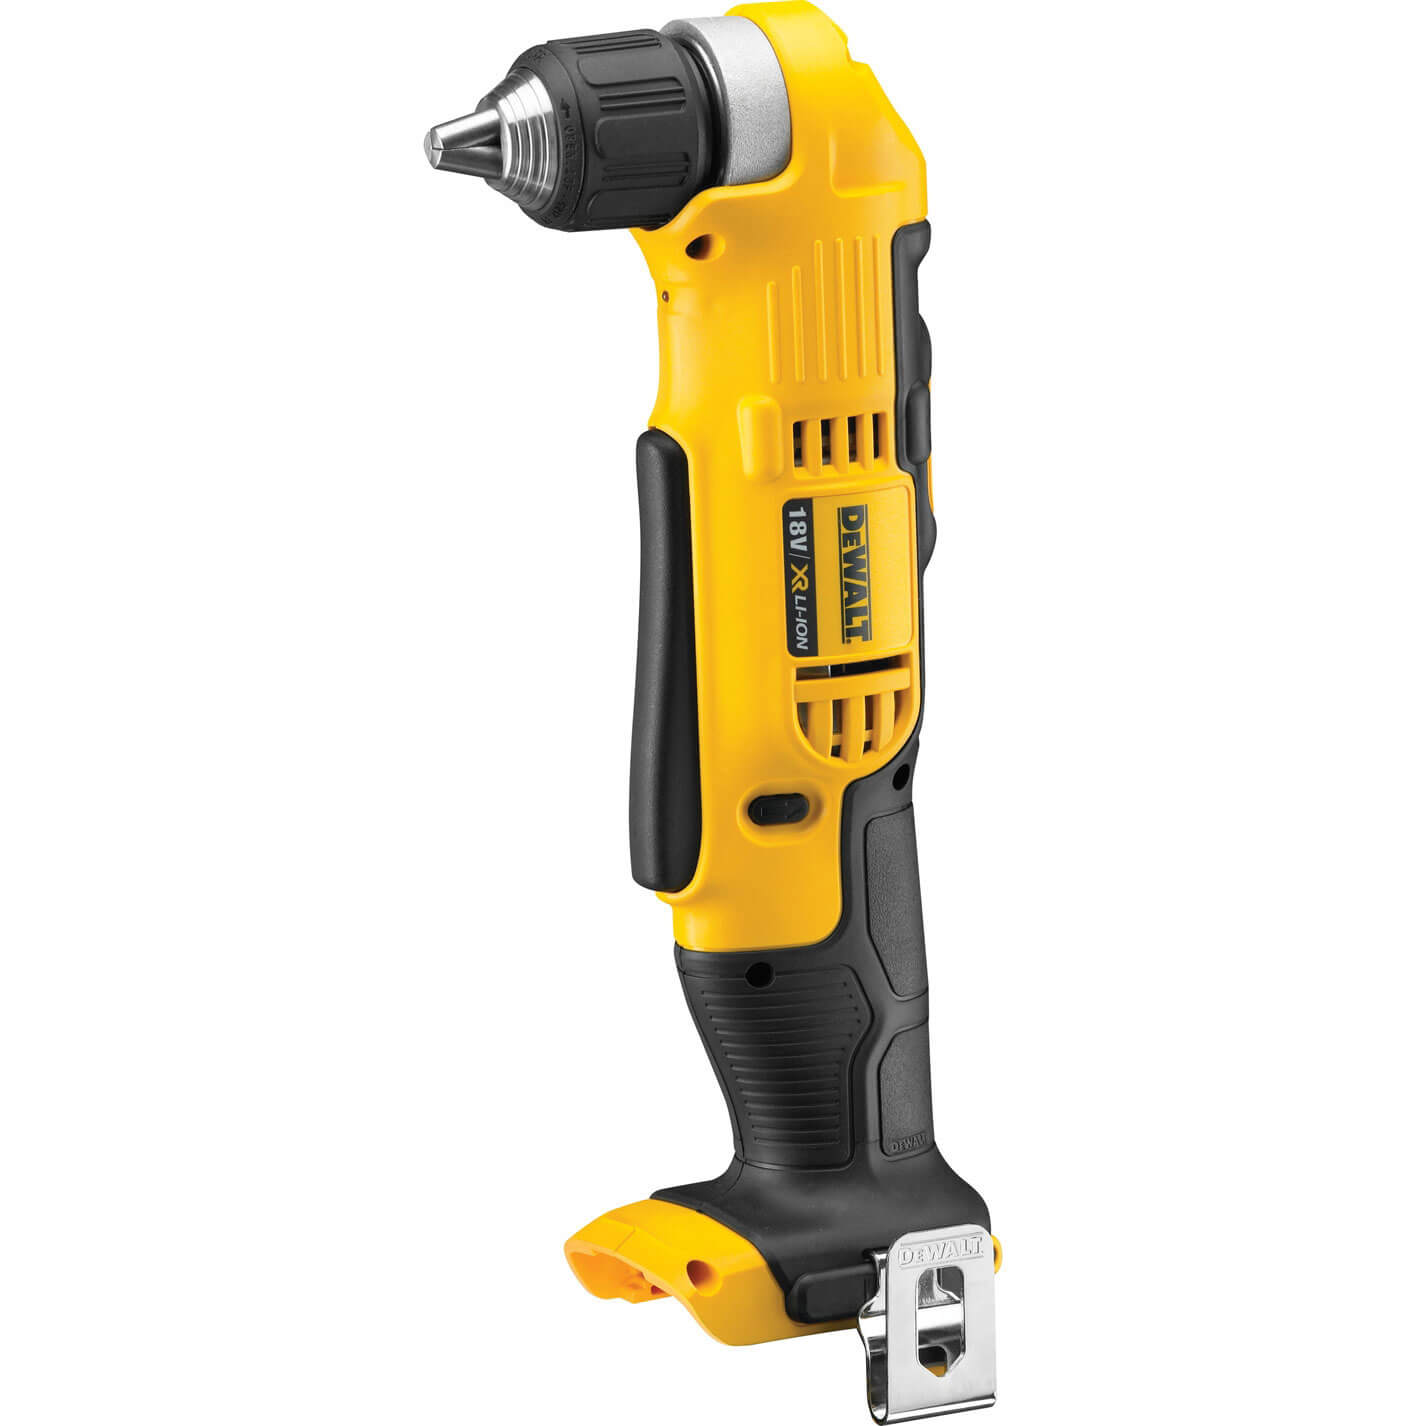 Image of DeWalt DCD740 18v XR Cordless Right Angle Drill No Batteries No Charger No Case